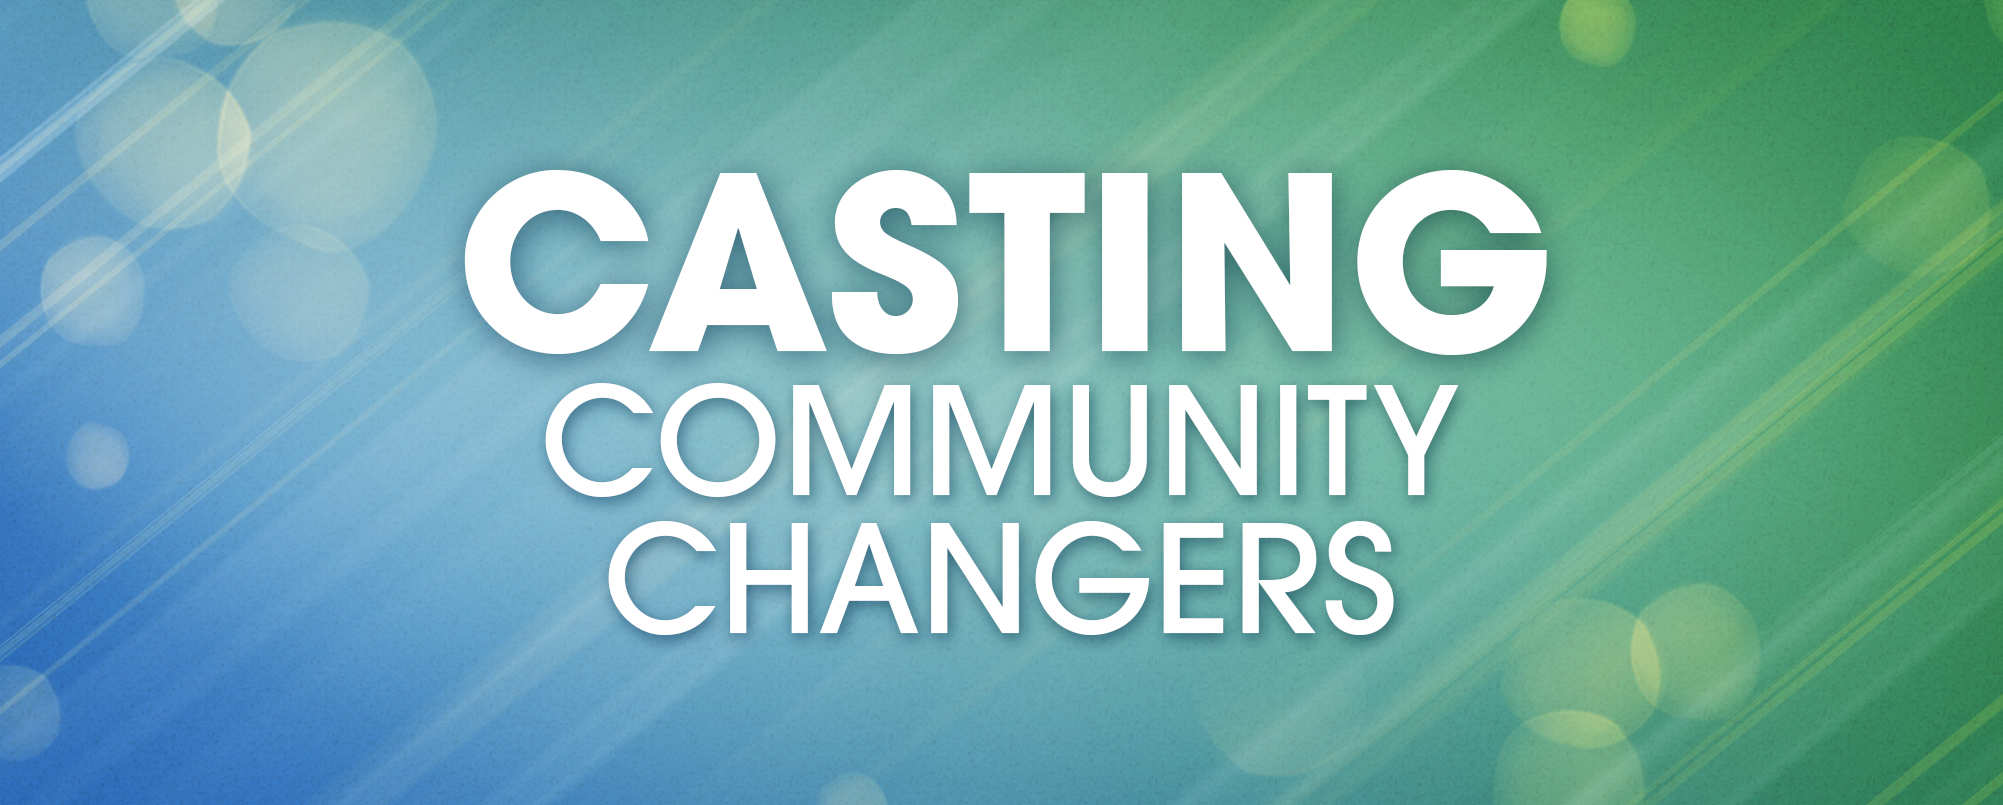 Casting Community Changers